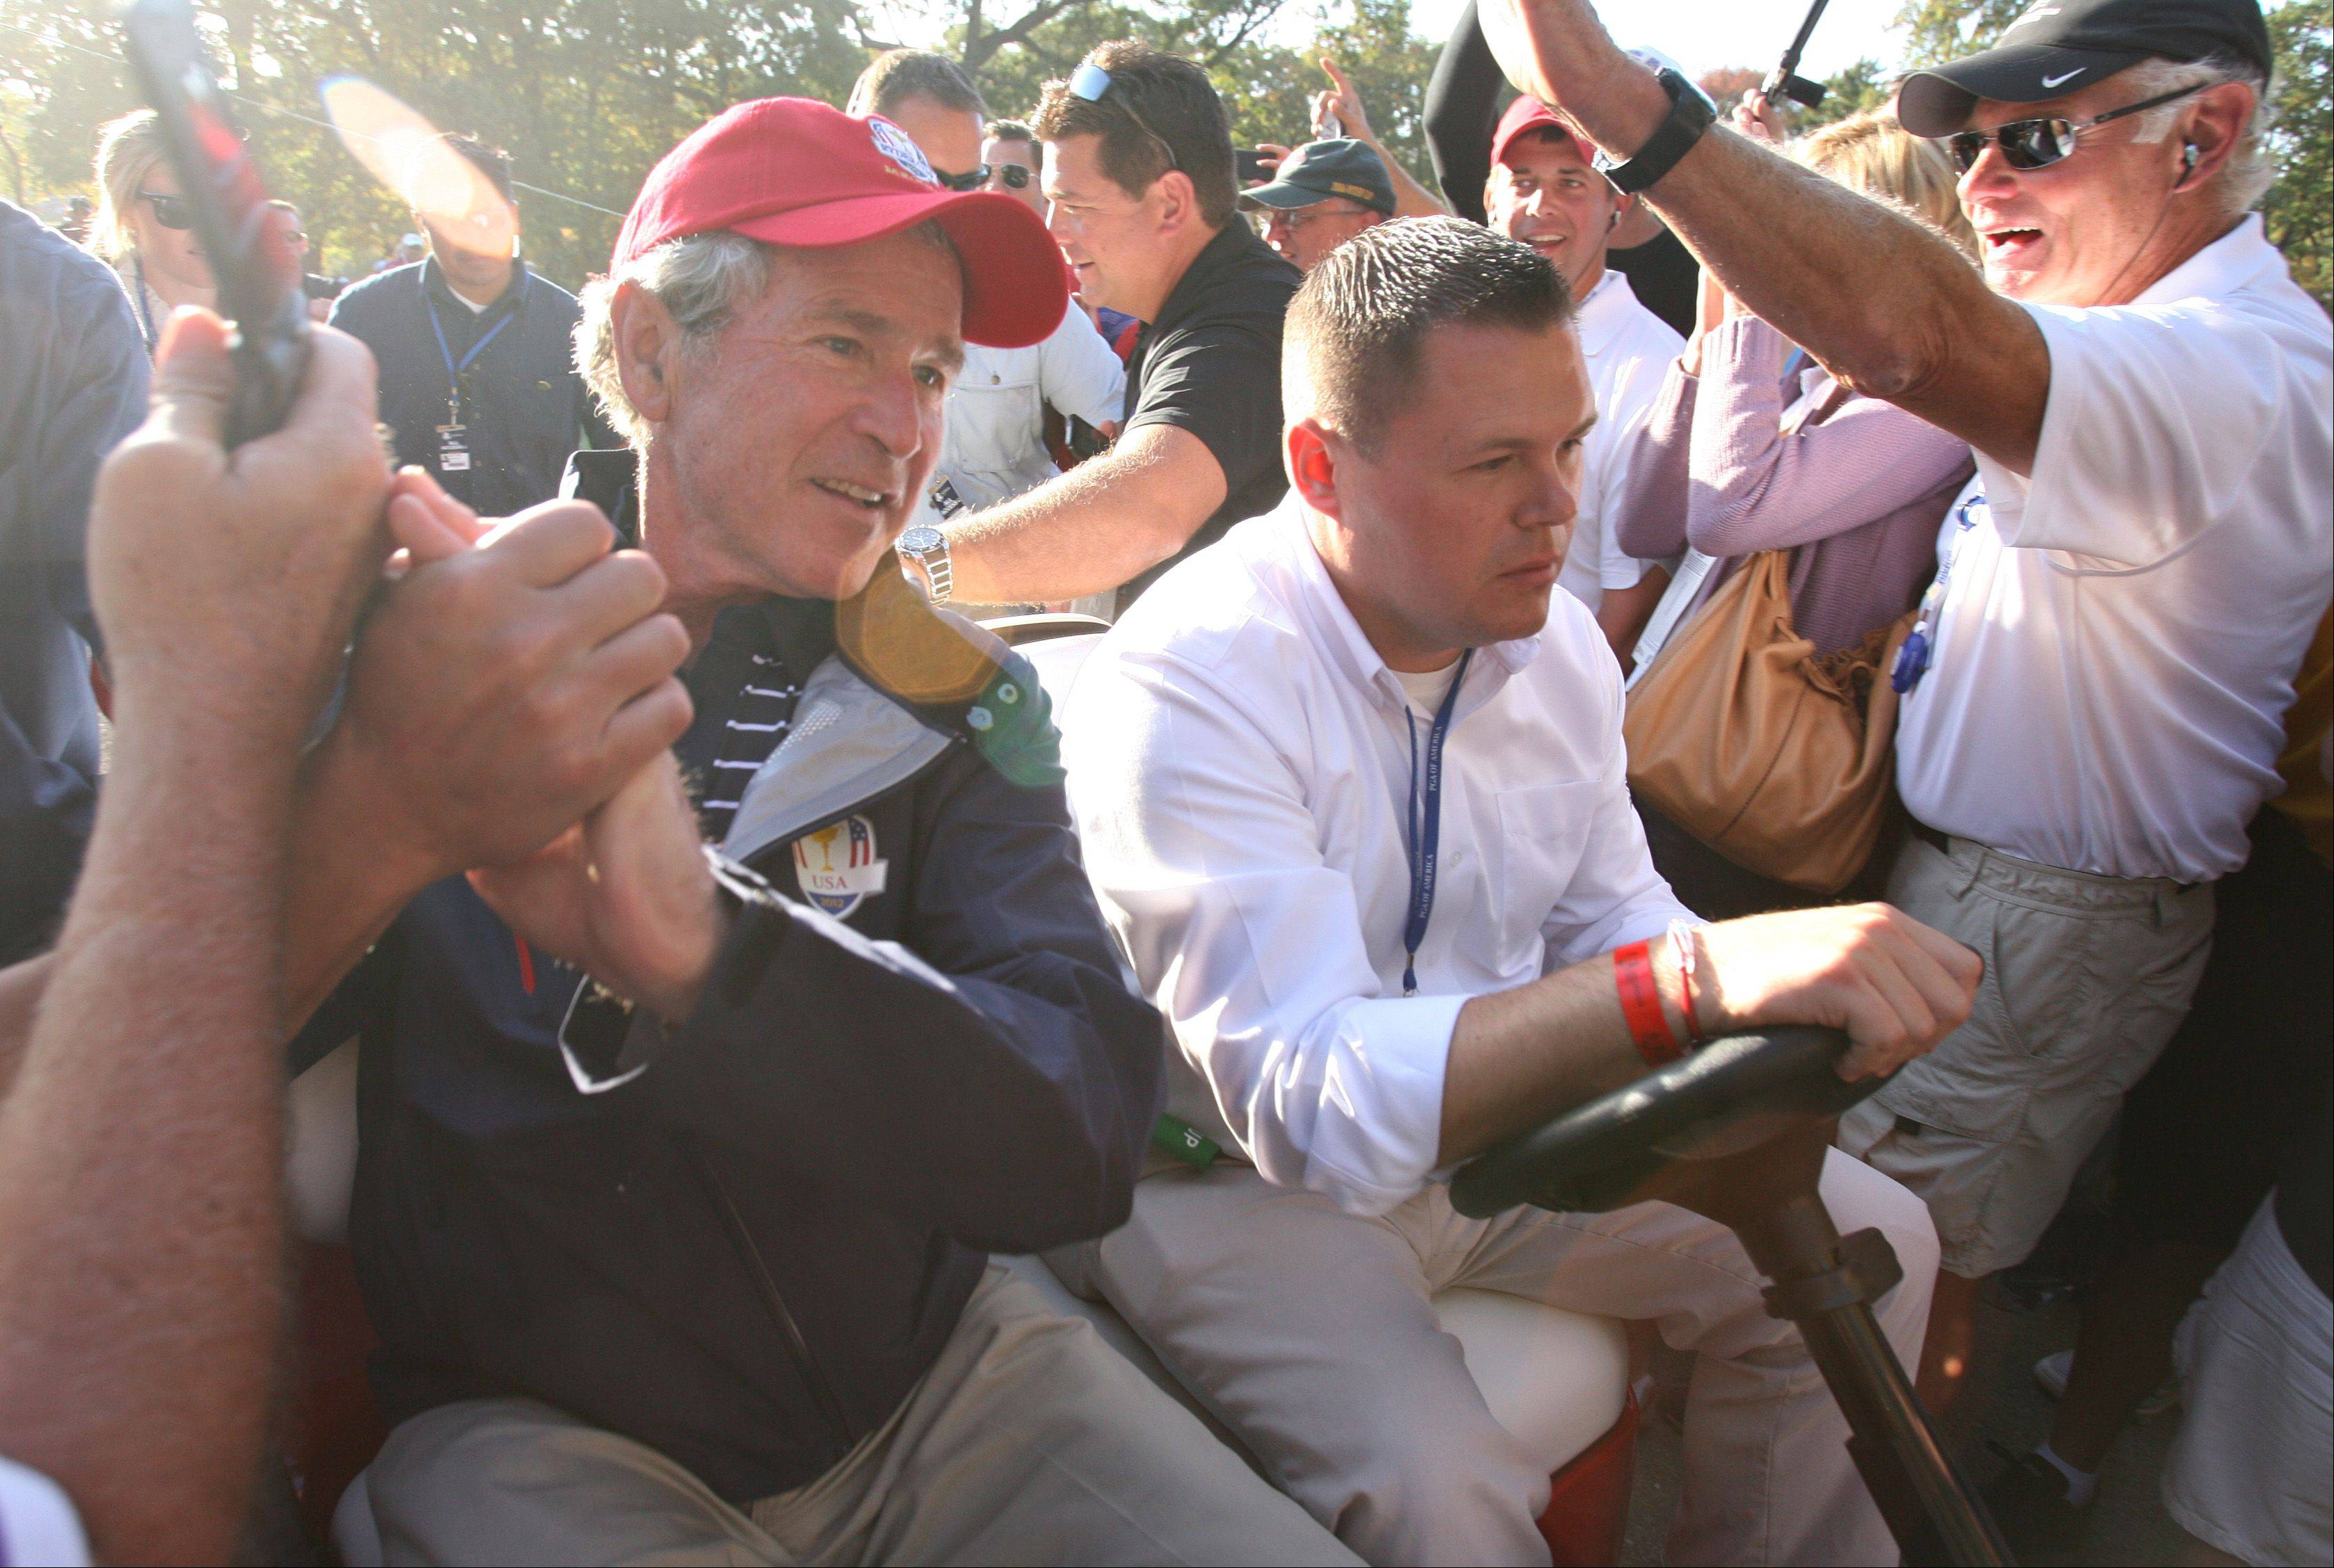 President George W. Bush is escorted by golf cart through a crowd of golf fans Saturday afternoon in Medinah.